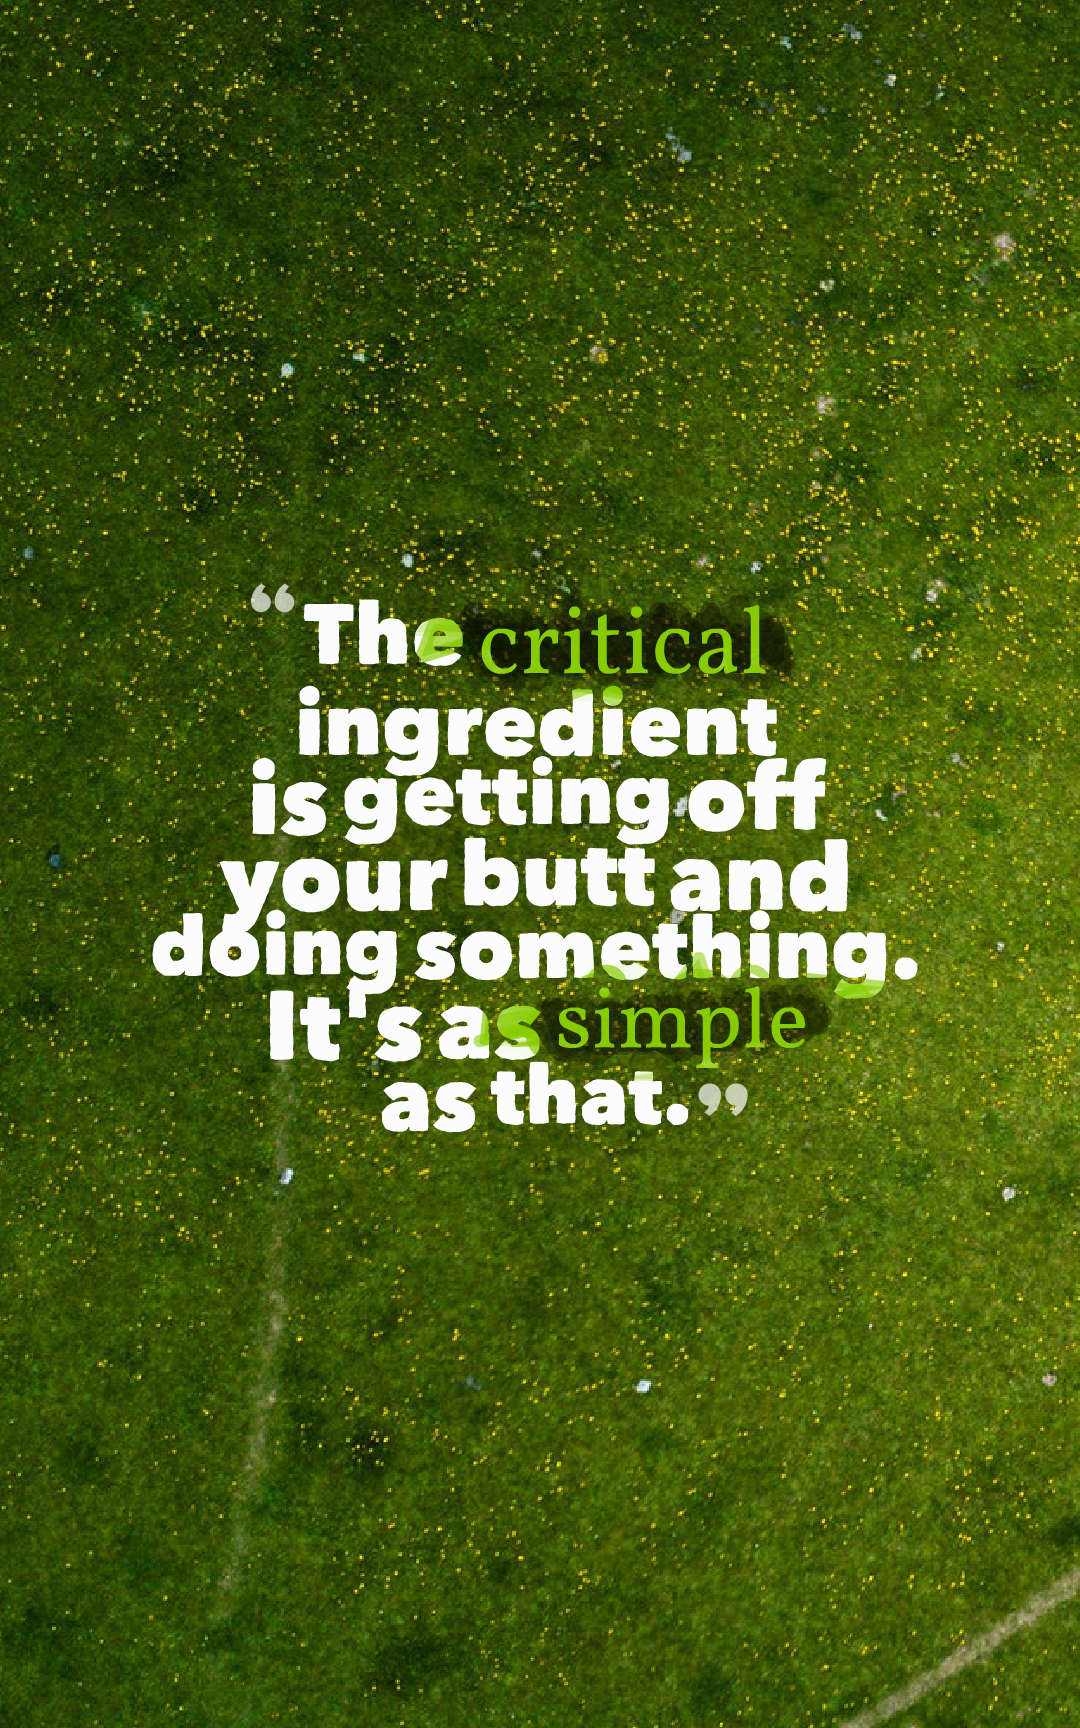 Quotes image of The critical ingredient is getting off your butt and doing something. It's as simple as that.